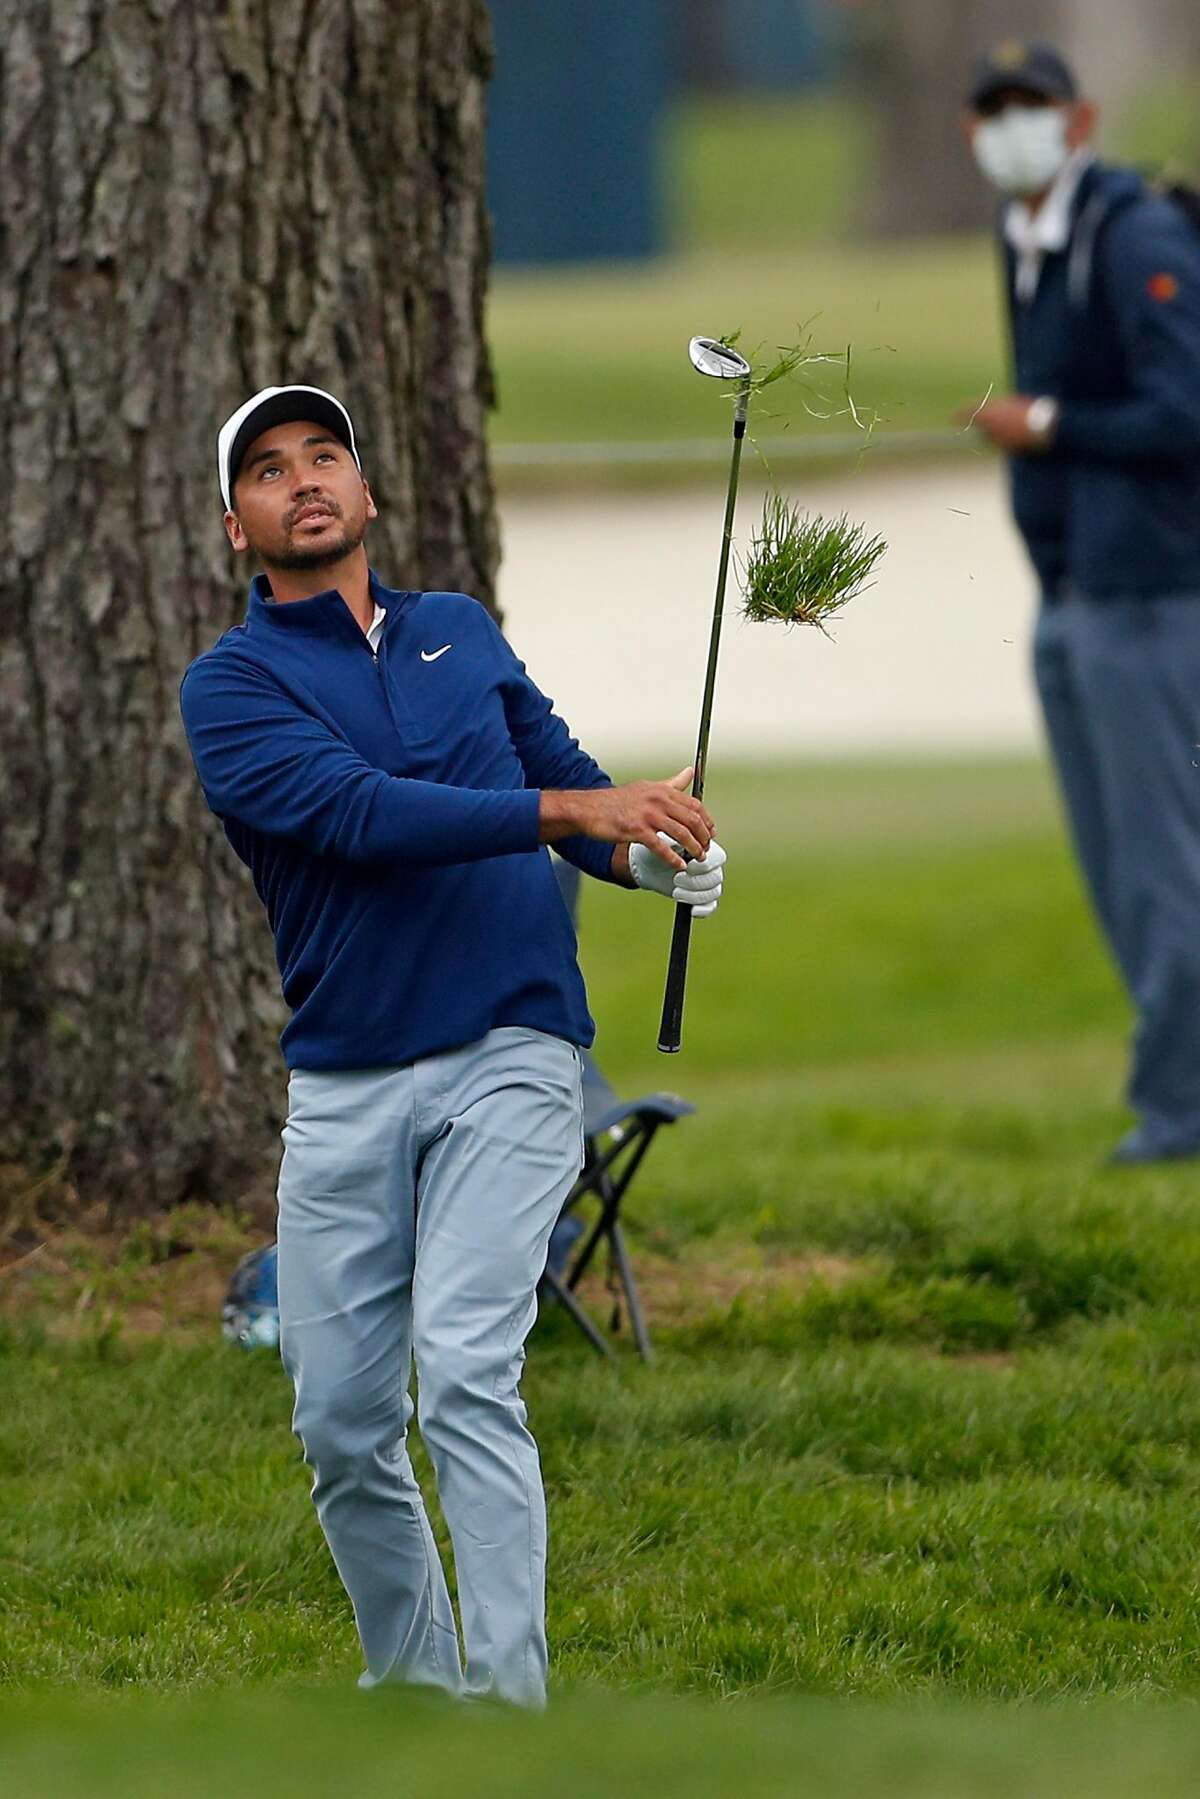 Jason Day watches his chip on 7th green during 3rd round of PGA Championship at TPC Harding Park in San Francisco, Calif., on Saturday, August 8, 2020.